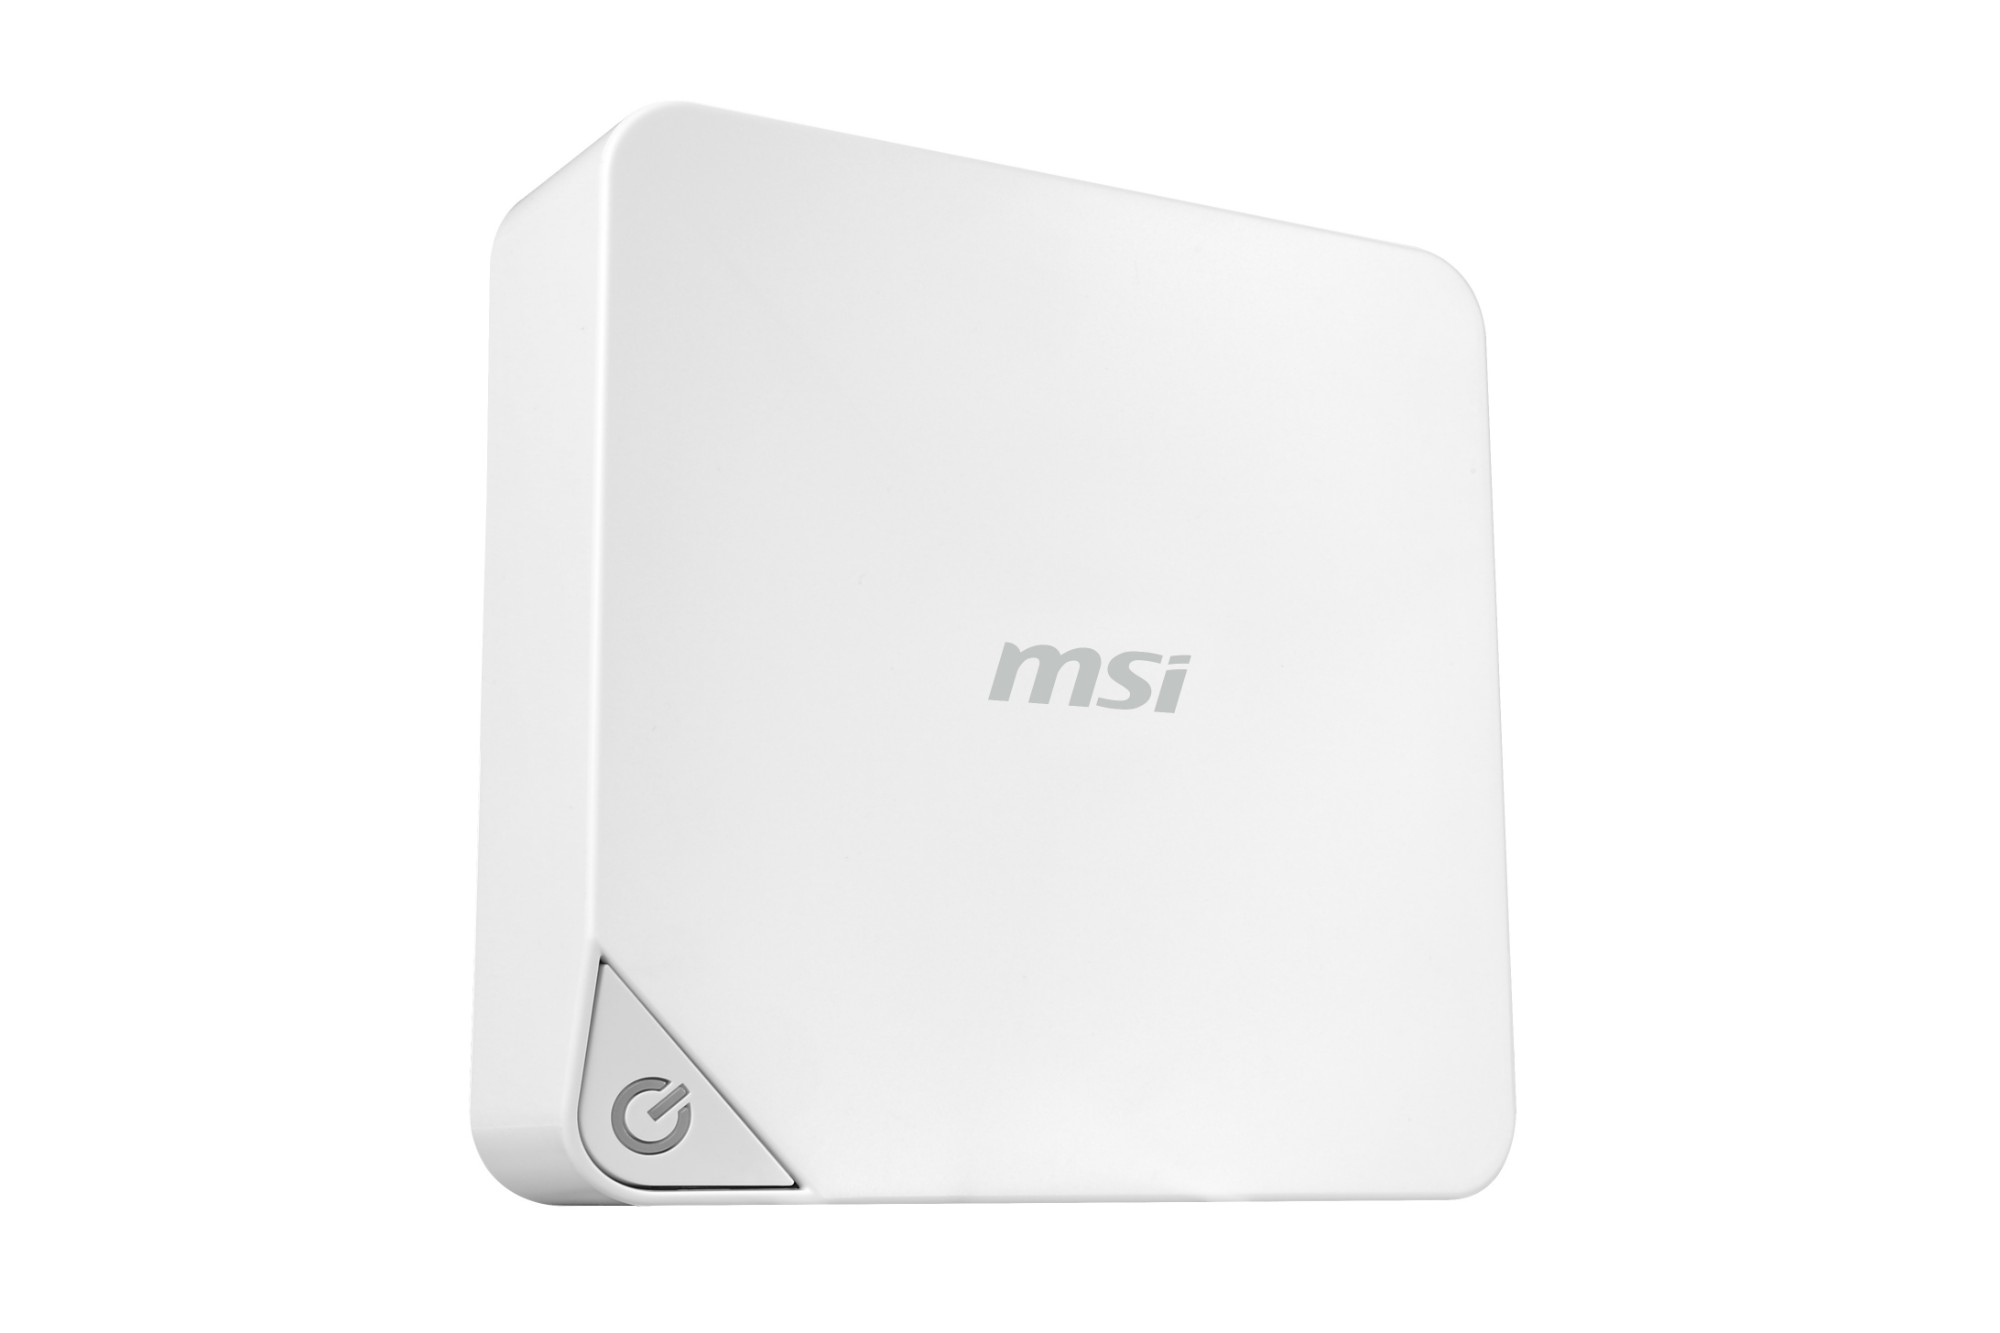 MSI Cubi -243WE 1.7GHz 3215U 0.45L sized PC White Mini PC